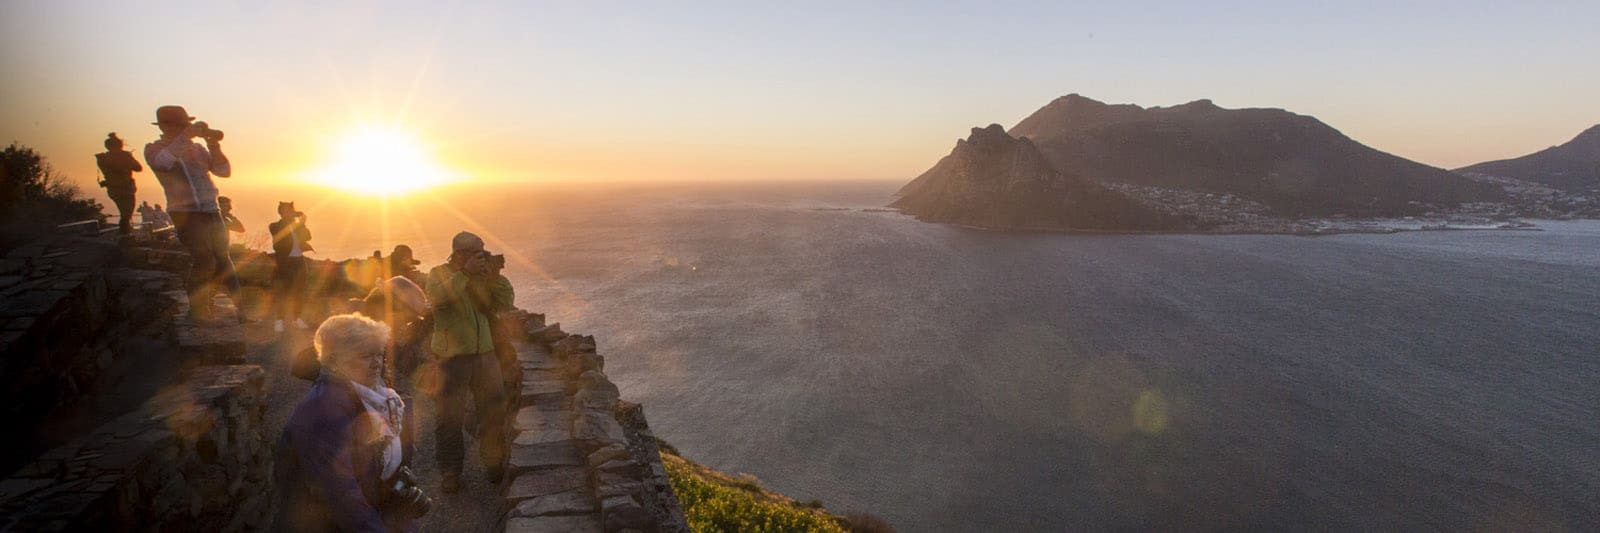 Behind the Scenes: Photographing Cape Town